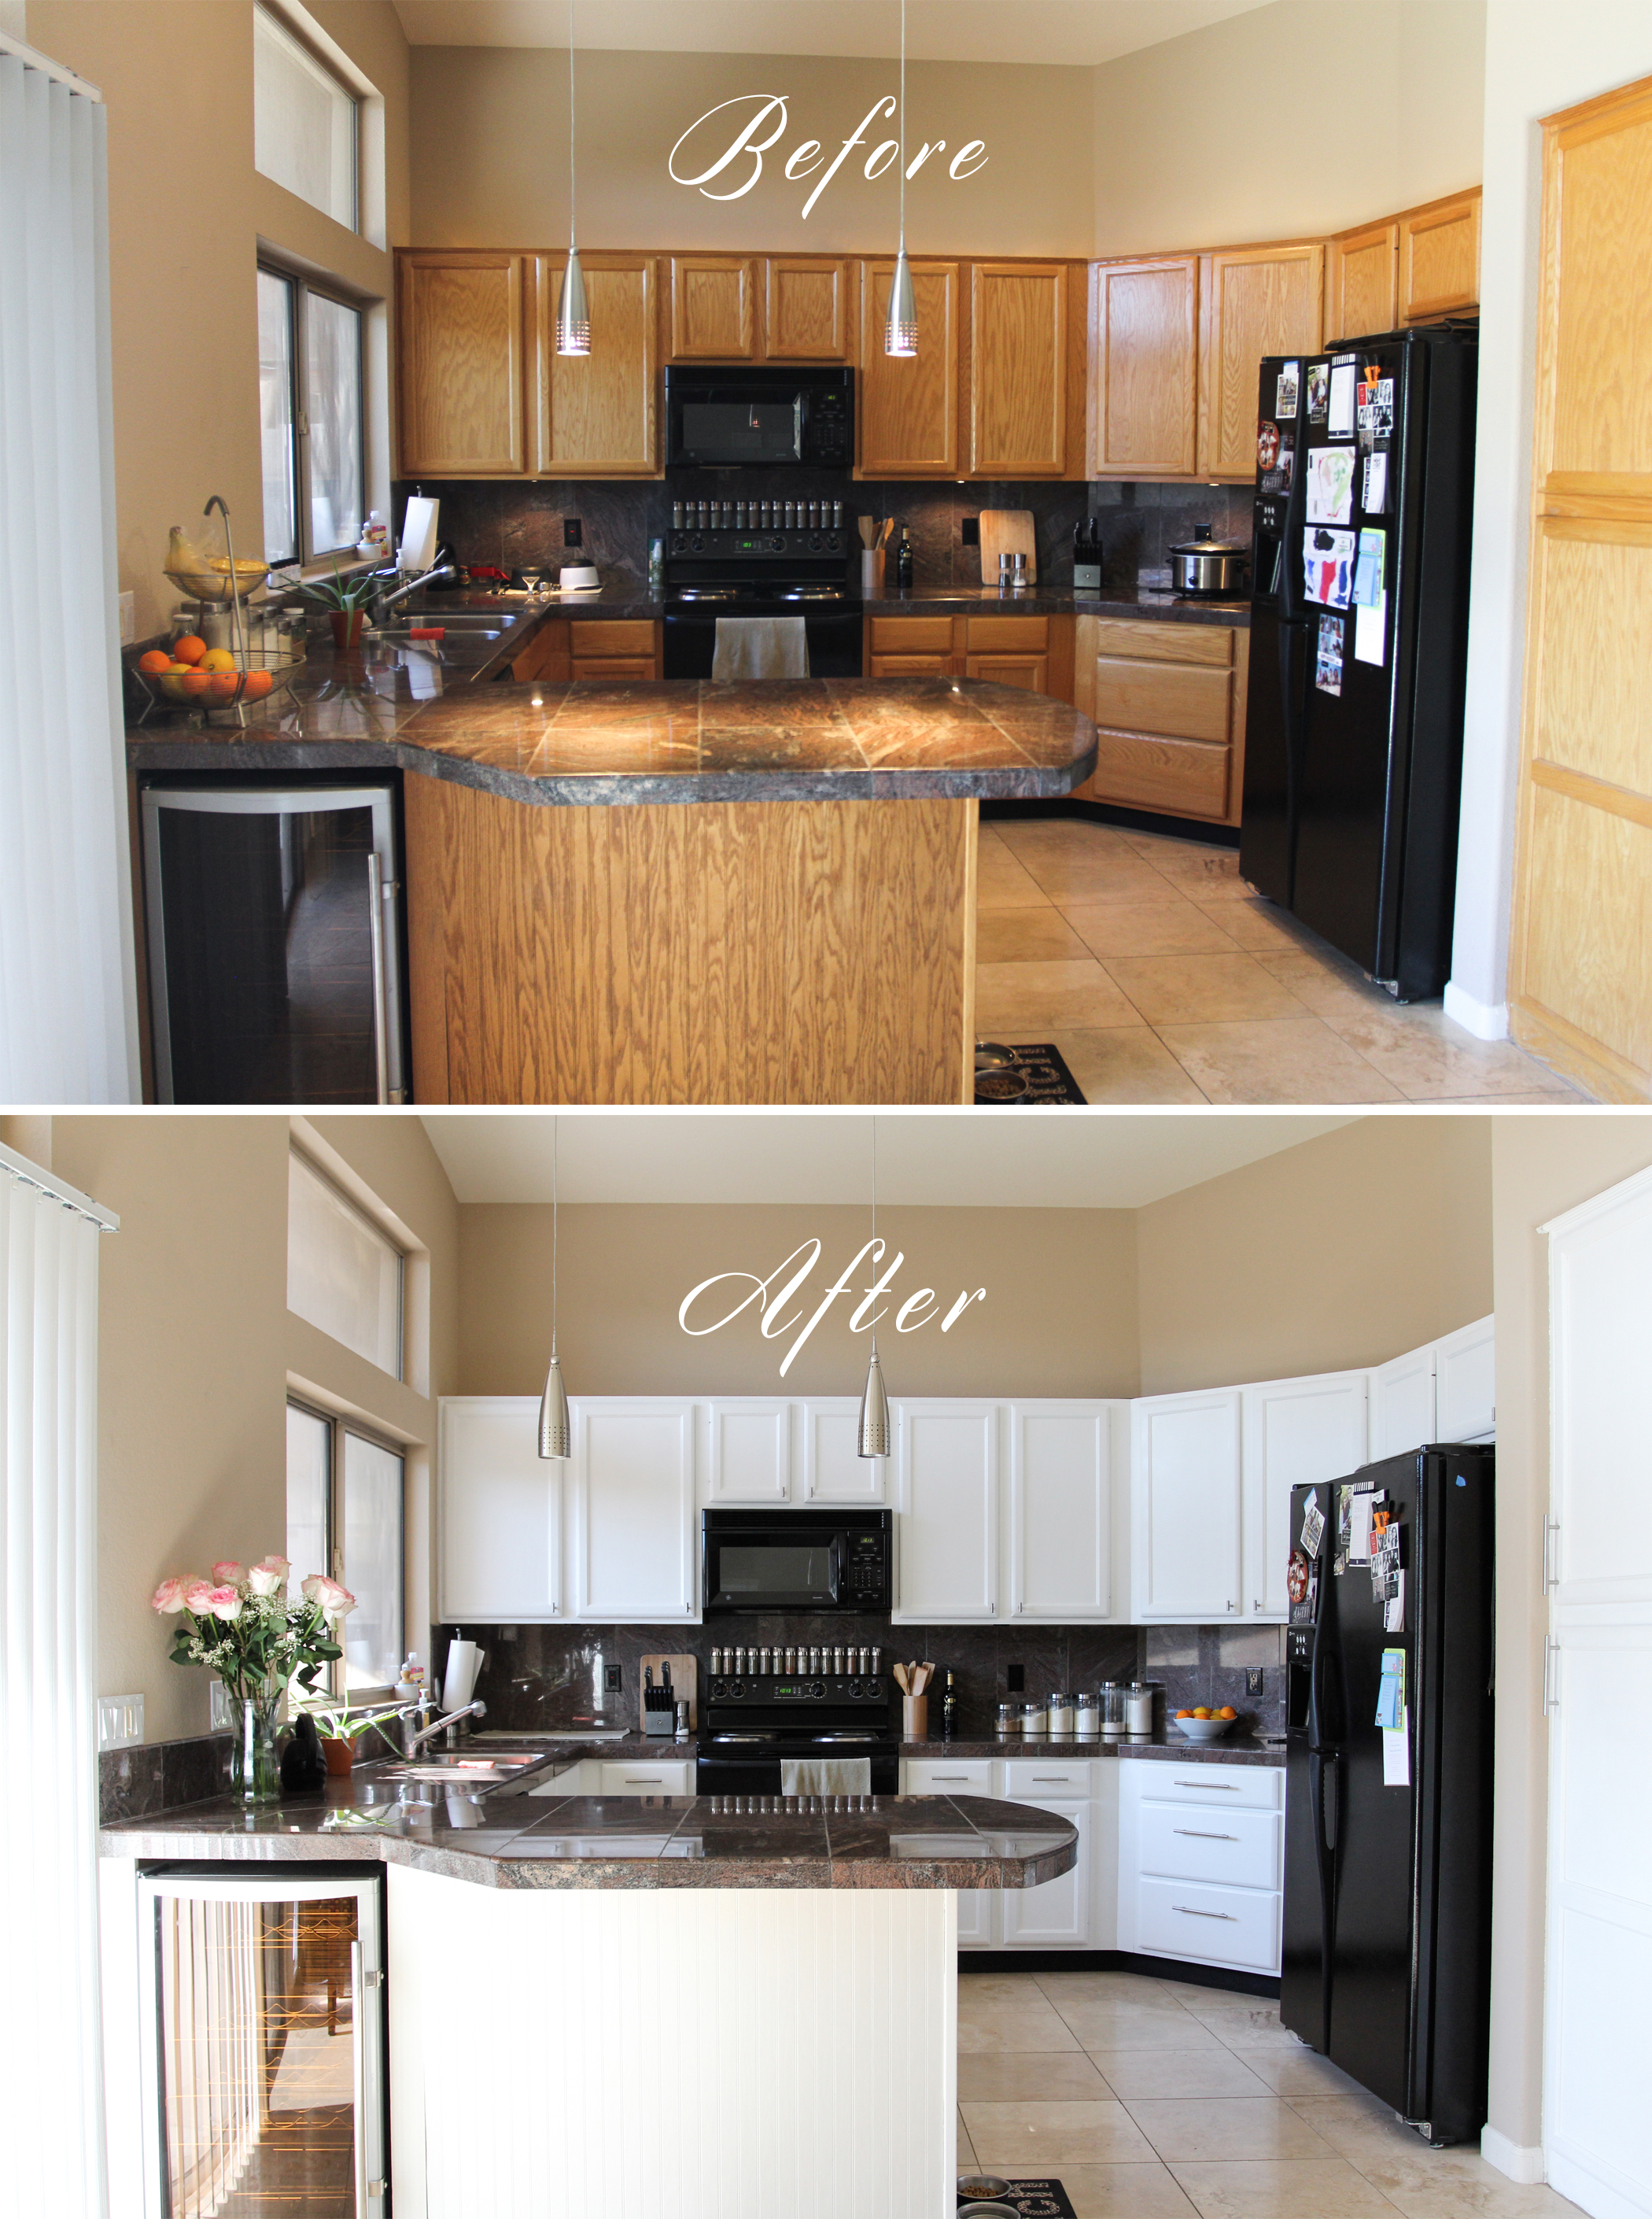 New Kitchen Cabinets Before After 100  Before After Kitchen Cabinets   Kitchen Room Apartment